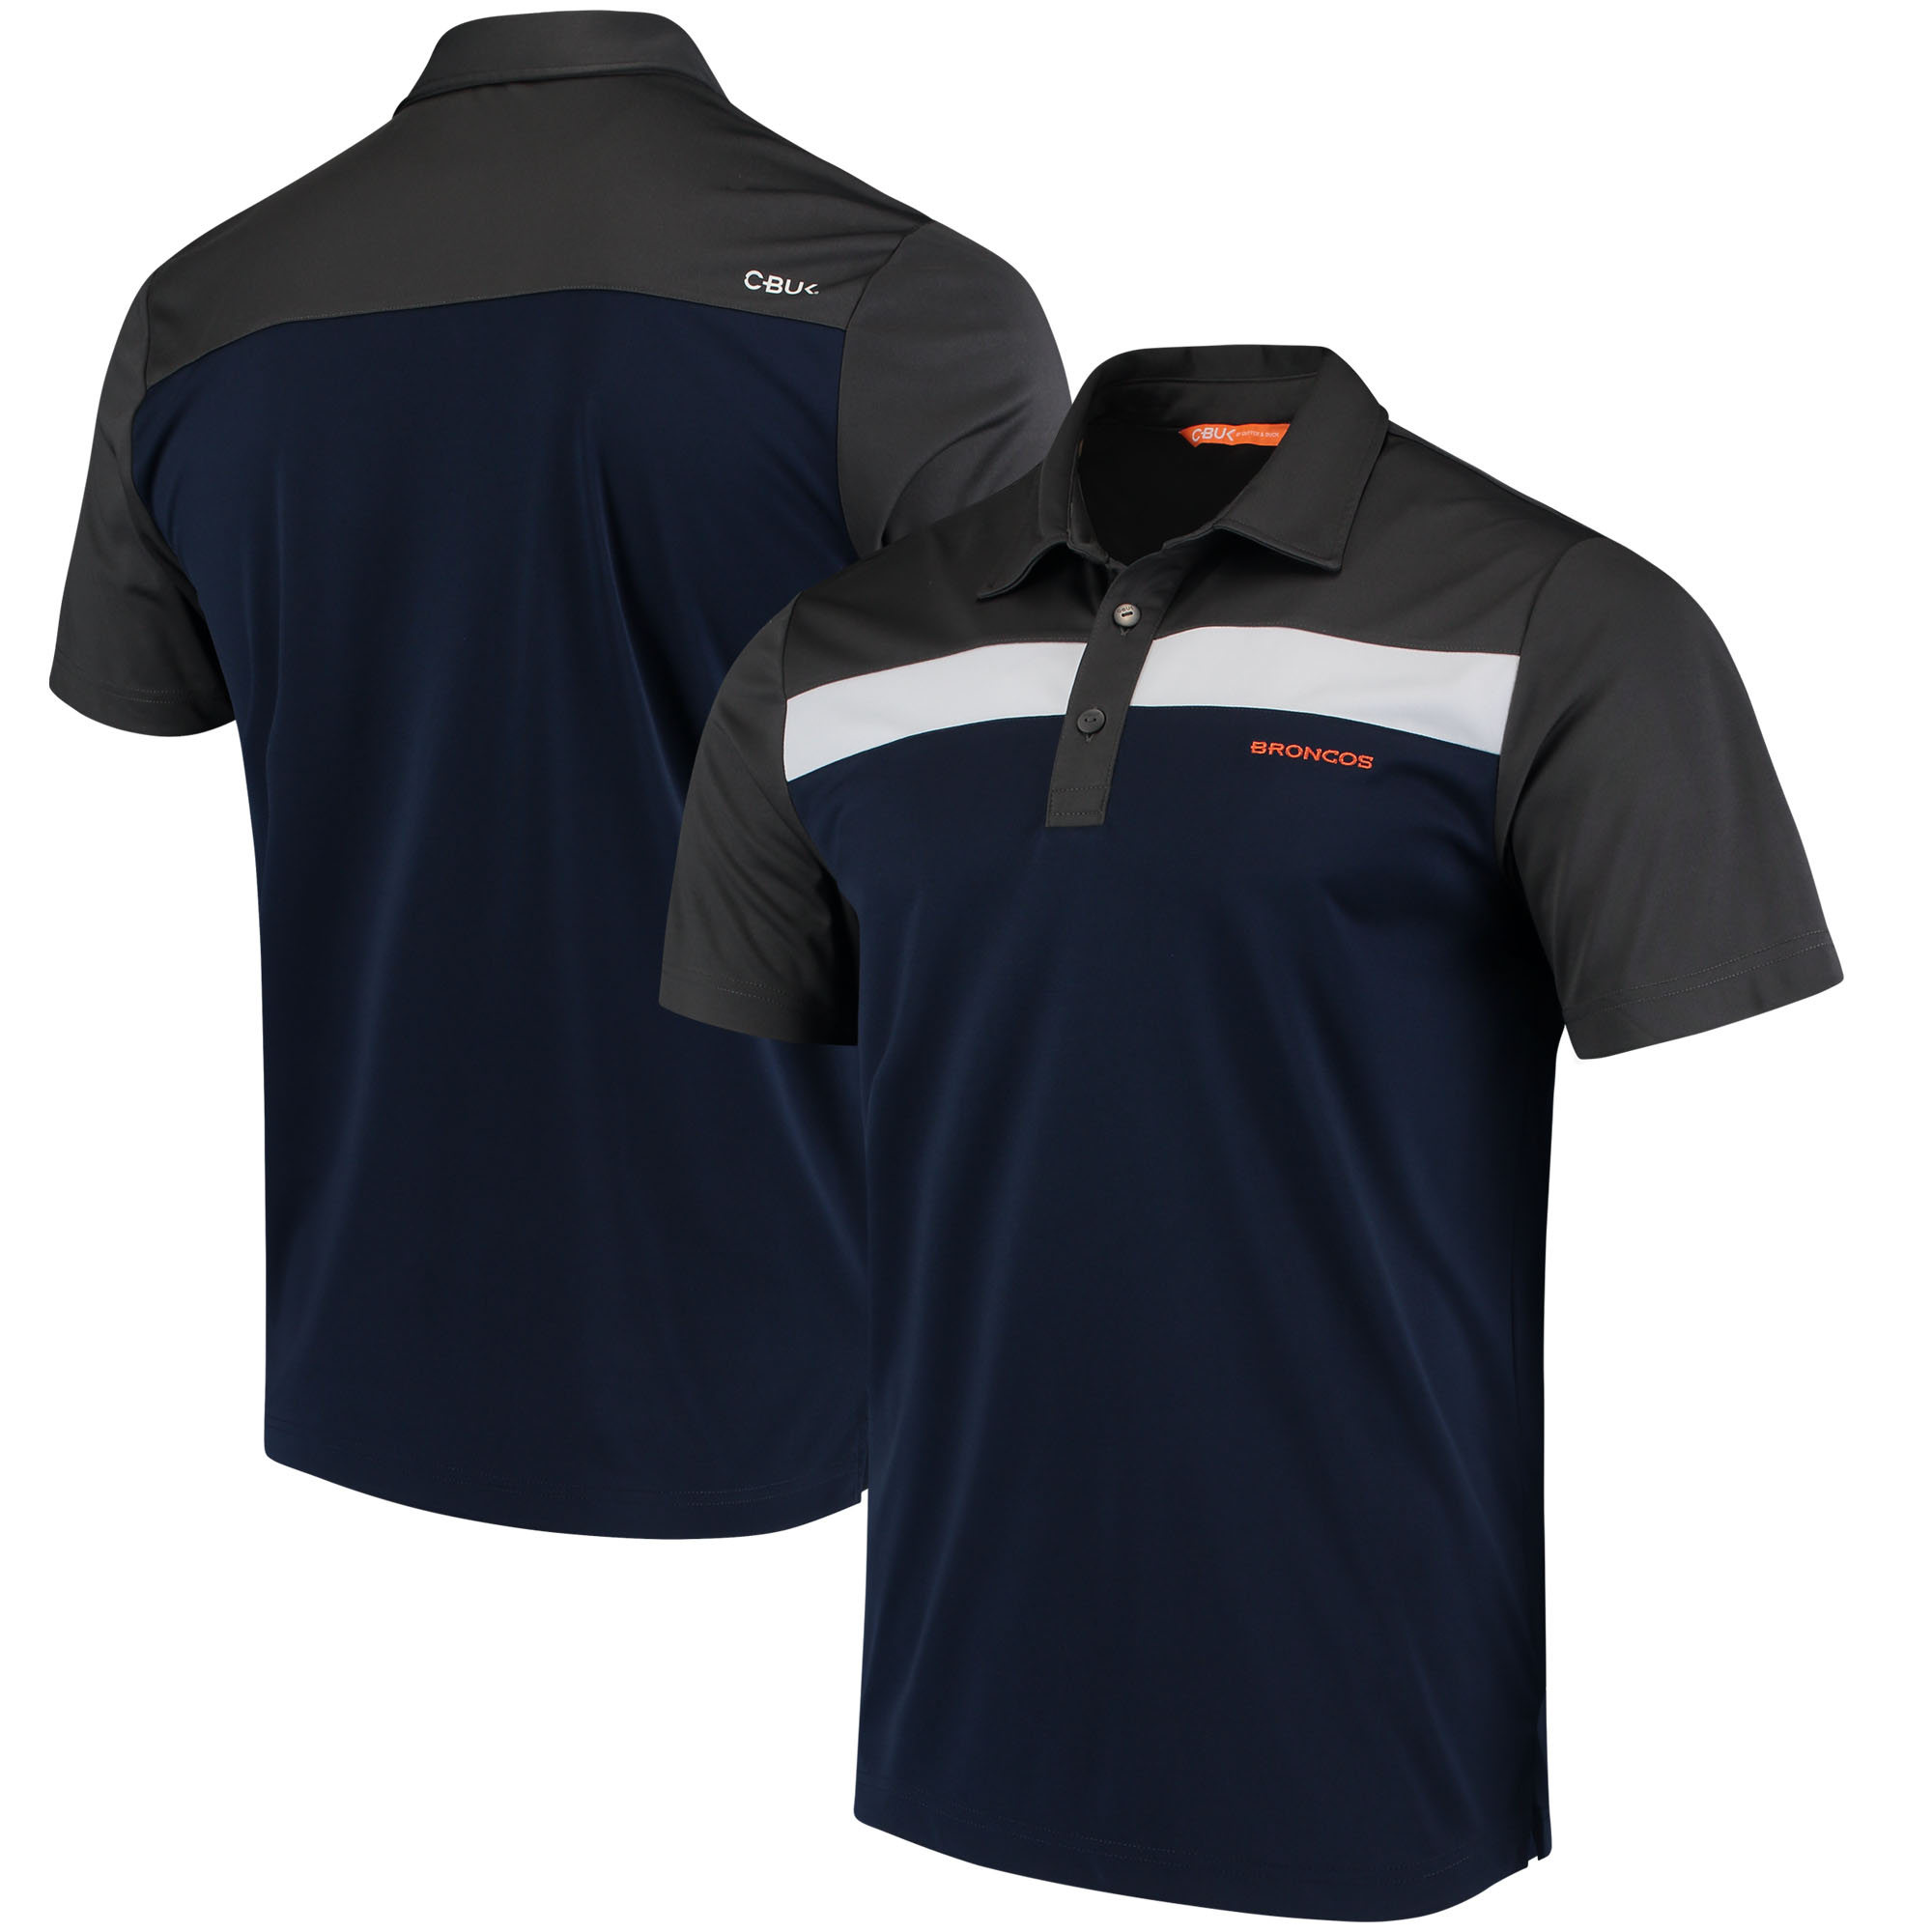 Denver Broncos CBUK by Cutter & Buck Chambers Polo - Charcoal/Navy - M